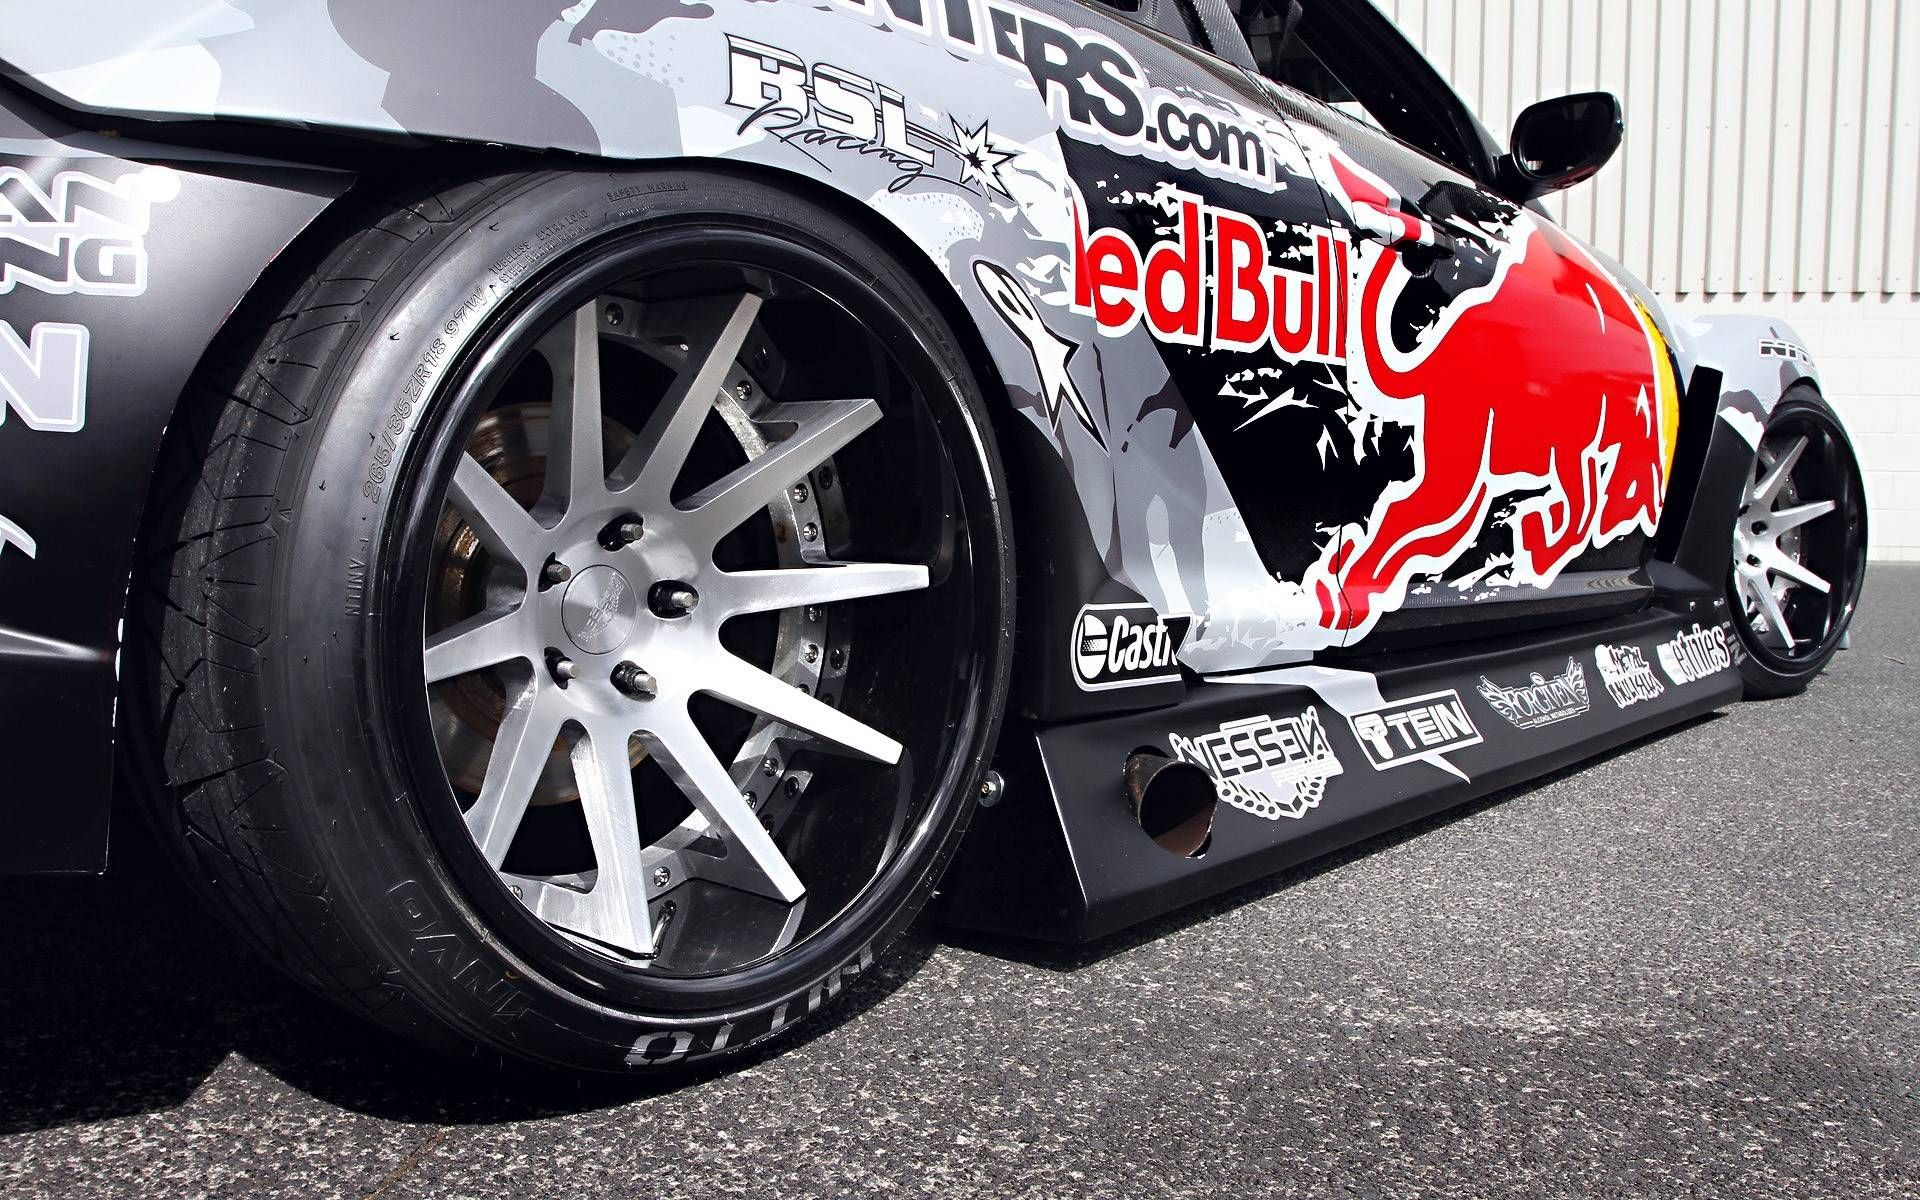 Red Bull Sports Car Pictures For Desktop And Wallpaper - Red bull motorcycle custom stickers